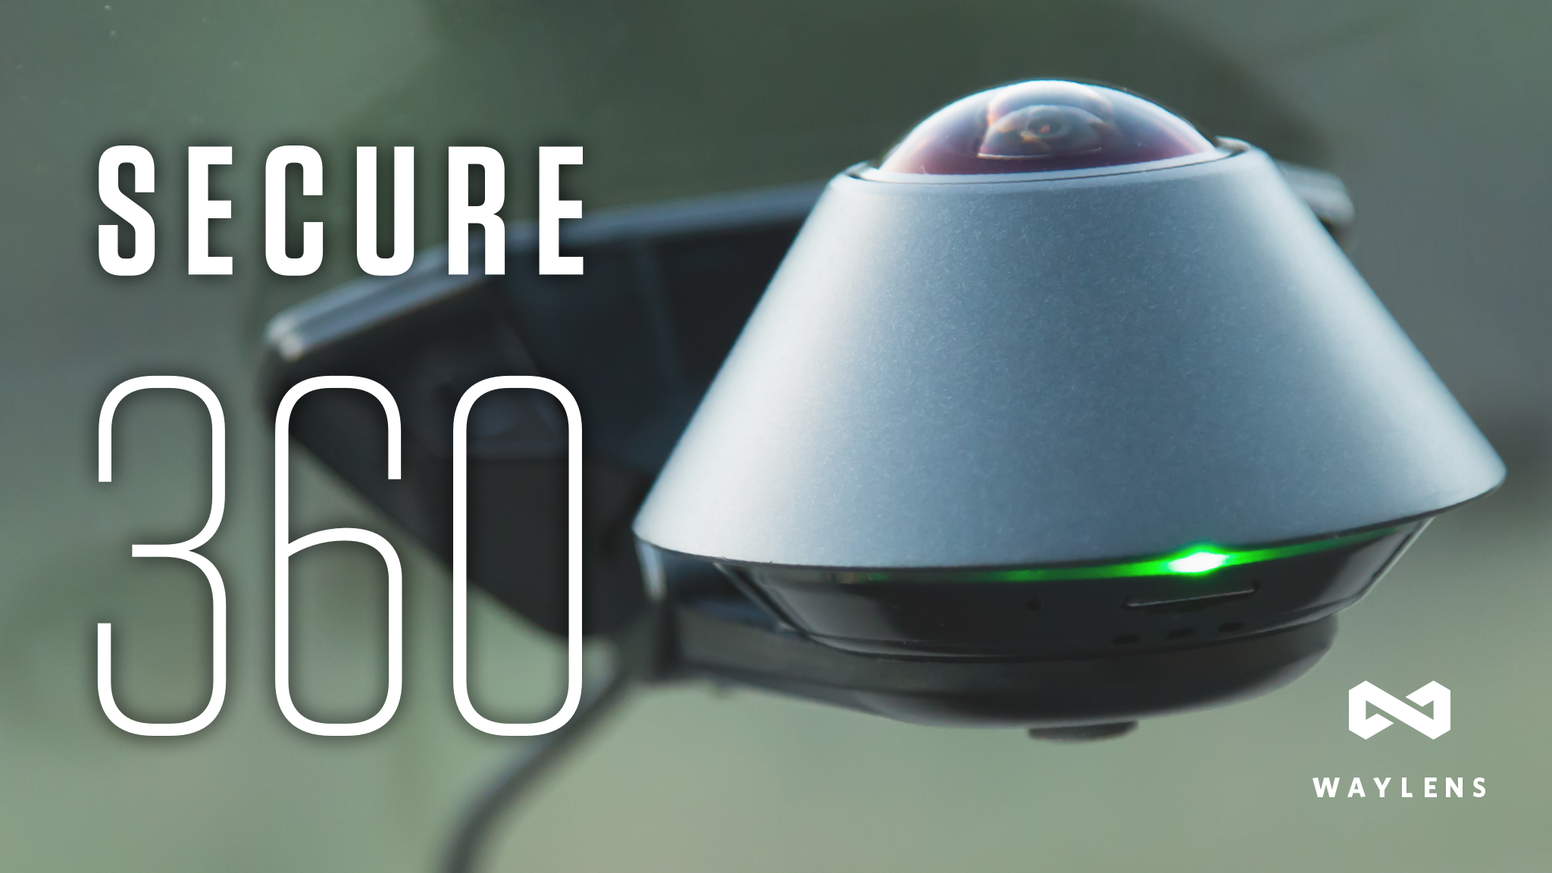 Waylens Secure360 With 4g Automotive Security Camera By Ip W 15 The First Connected 360 Degree Dash That Sees Everything Going On In And Around